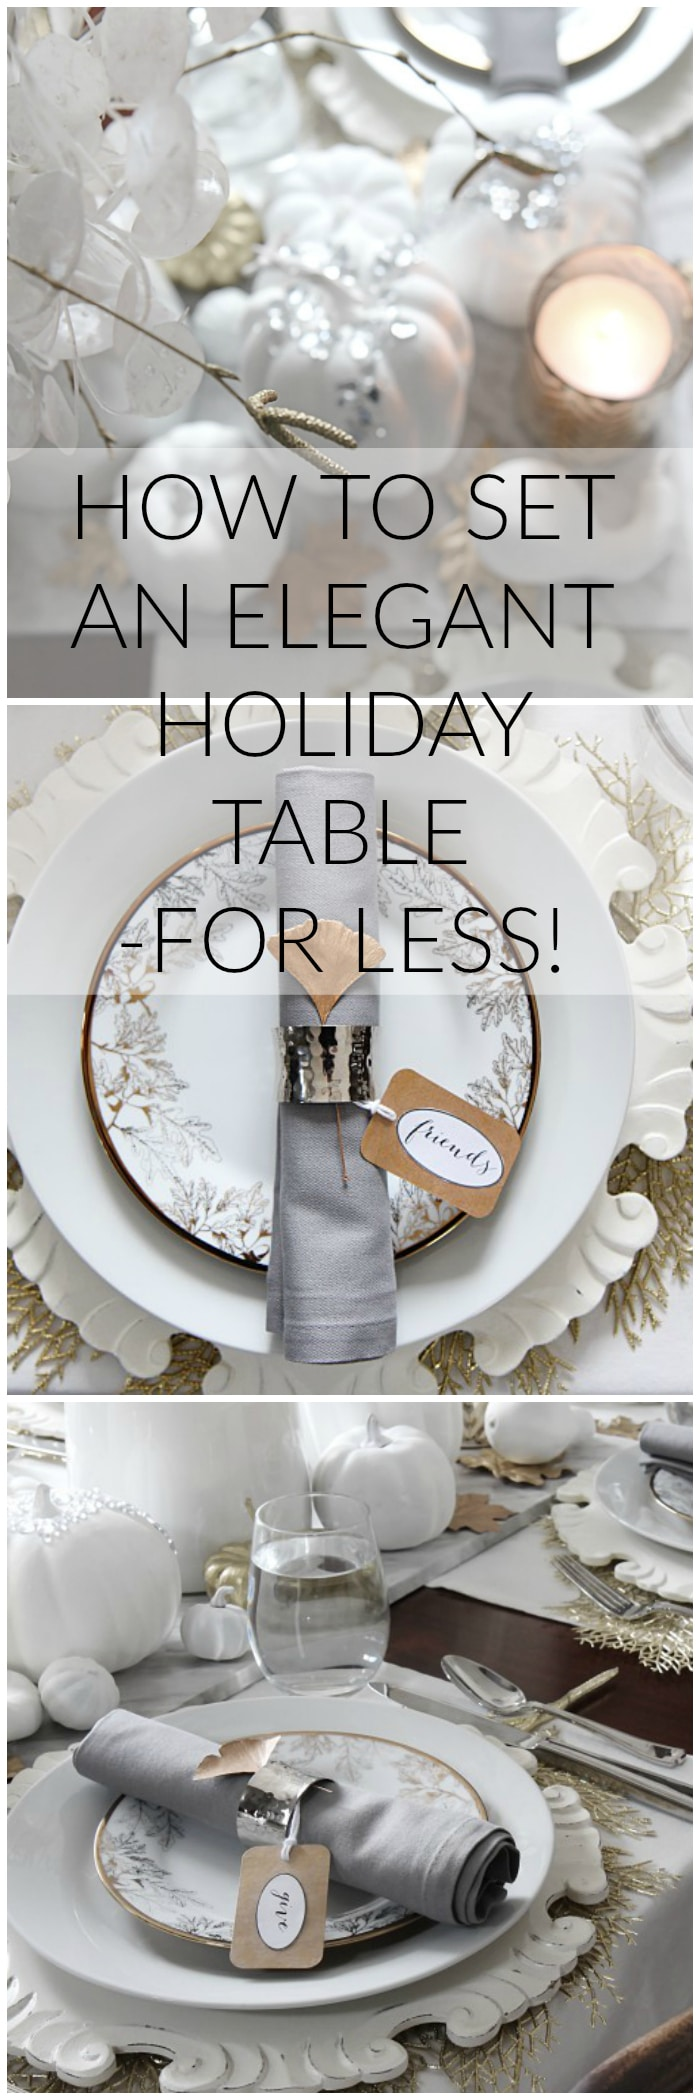 How to set an elegant holiday table for less! See these easy and inexpensive centerpiece and table setting ideas and entertain in style on a budget!